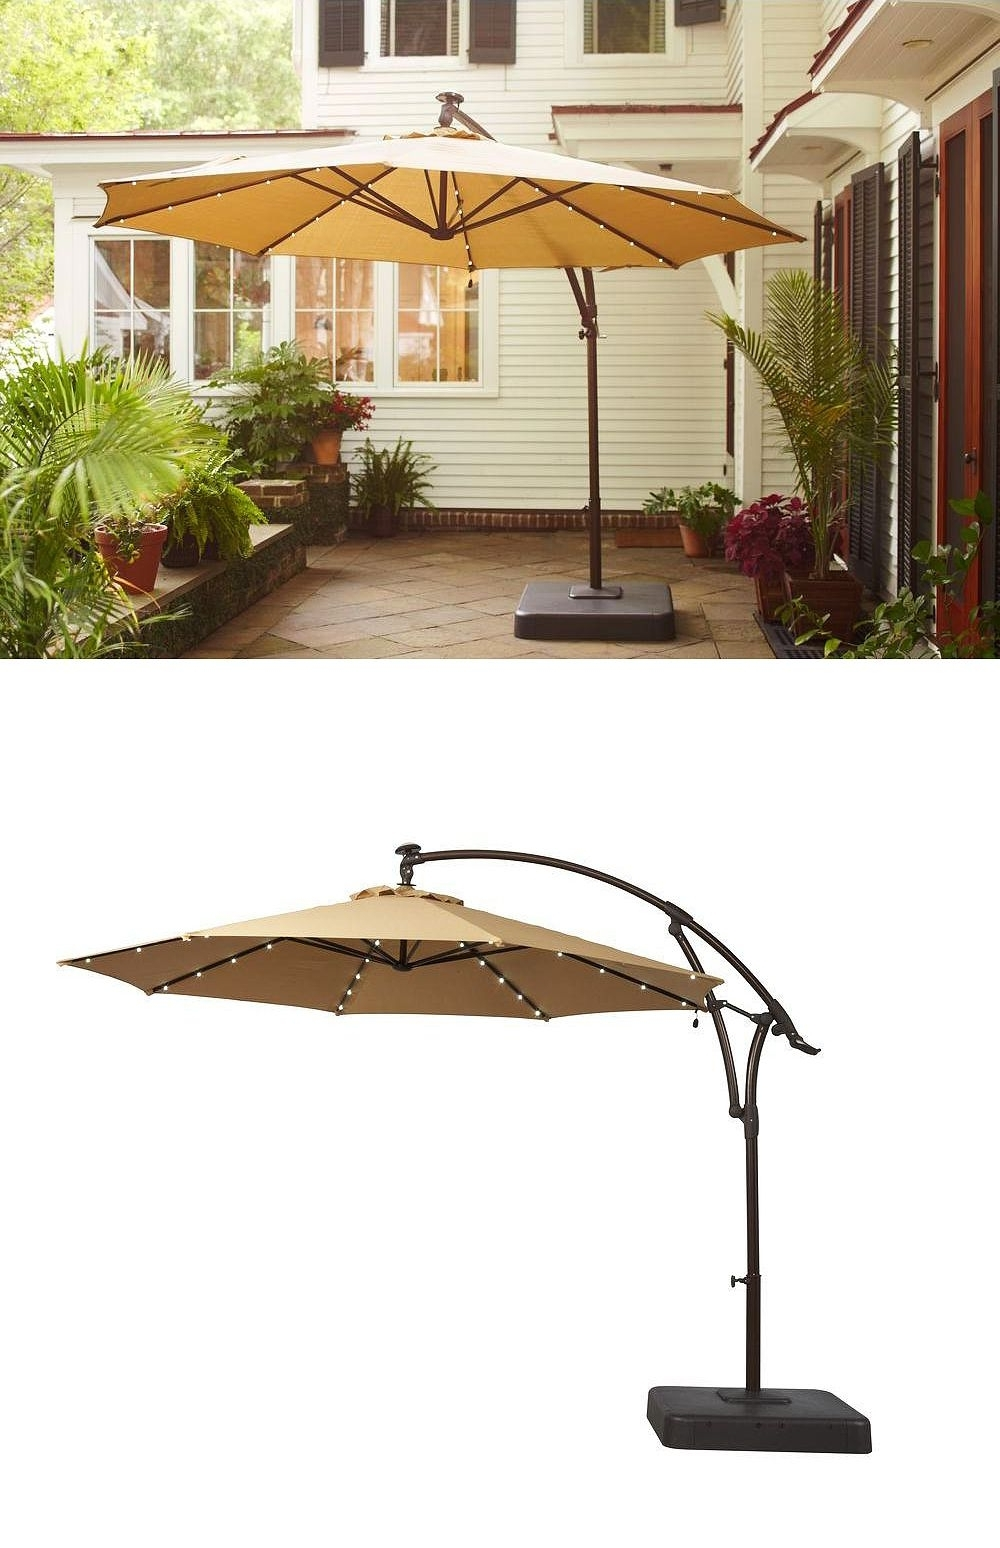 Newest There's Something Special About This Patio Umbrella: It Has Small Throughout Patio Umbrellas With Led Lights (Gallery 17 of 20)